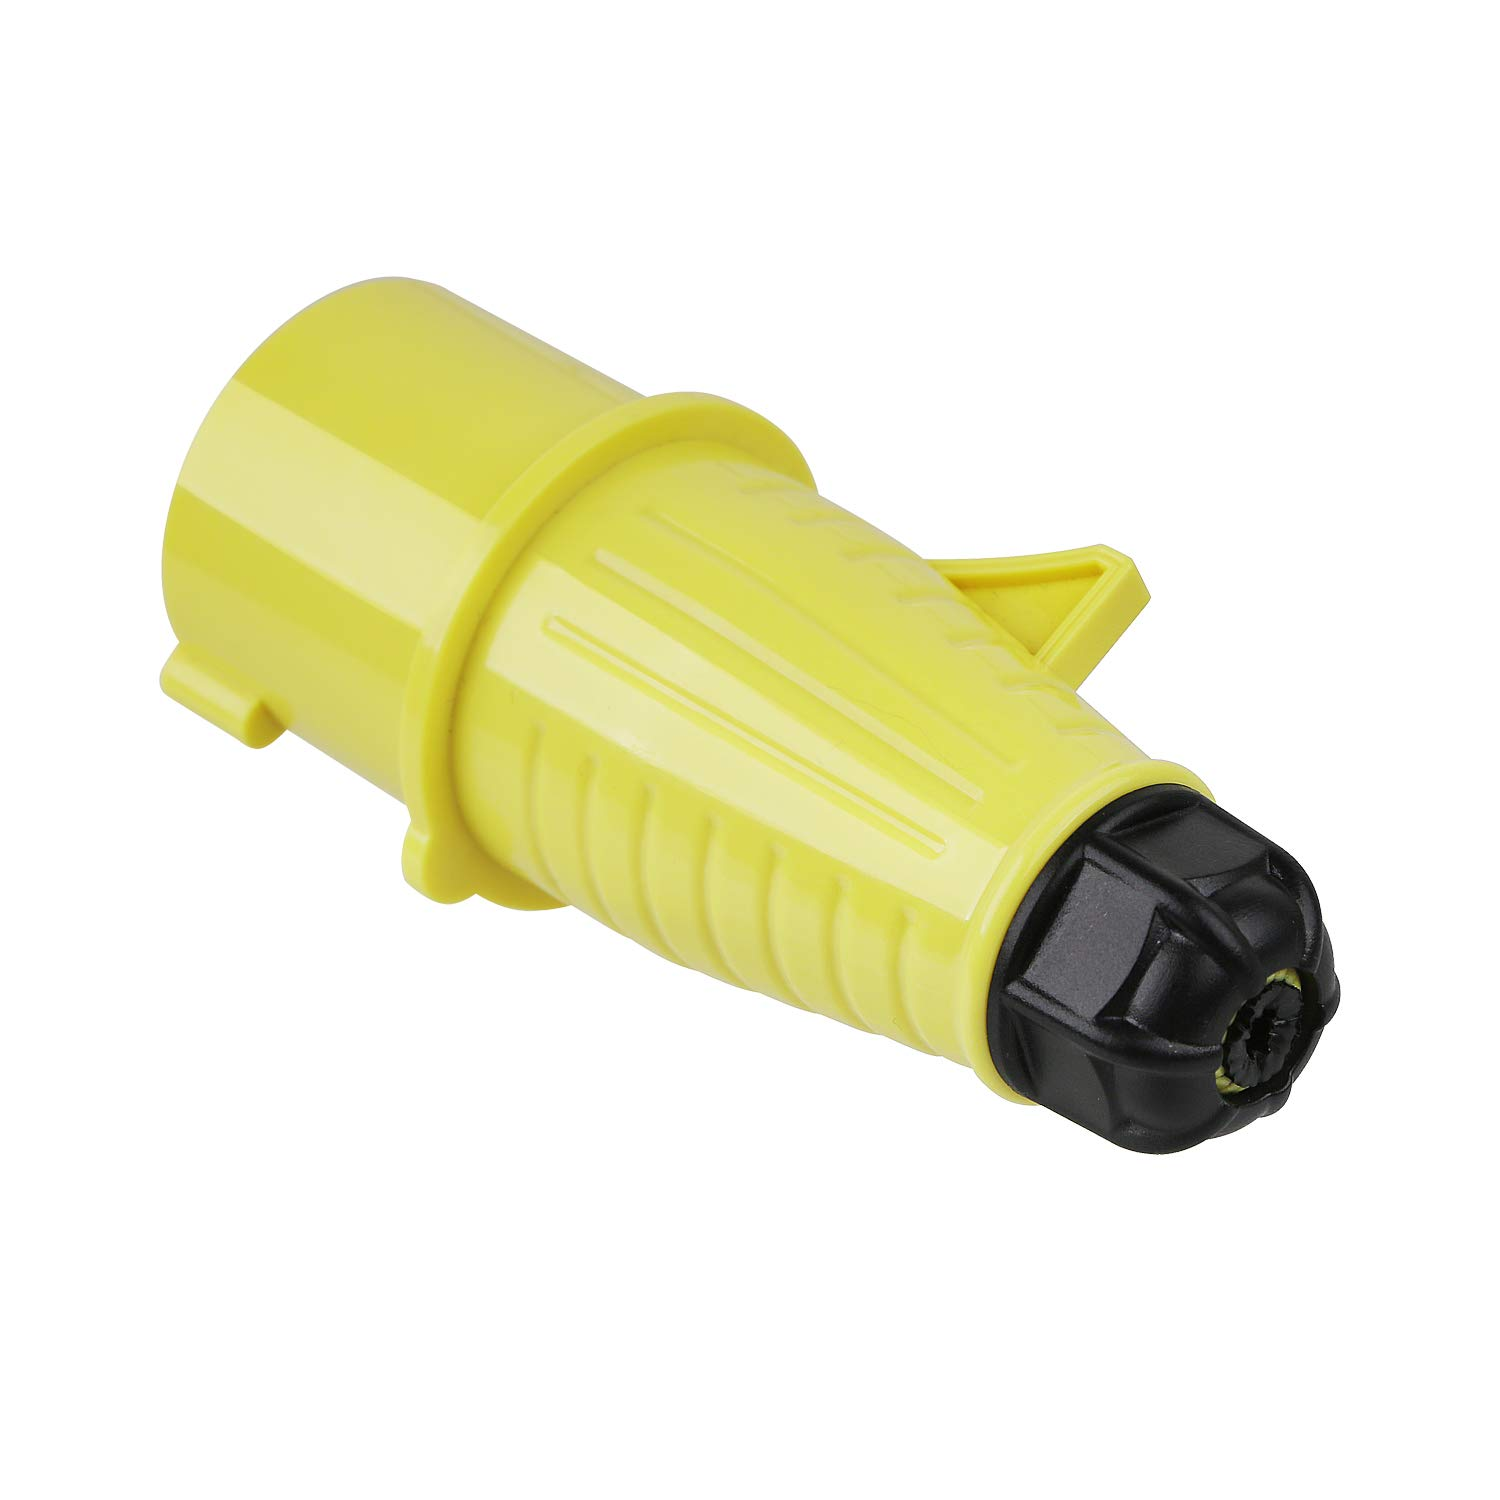 130V Fiche m/âle IP44 2P+E poles M EGA MEGACUBE 16A 100V Jaune 6 heures Position